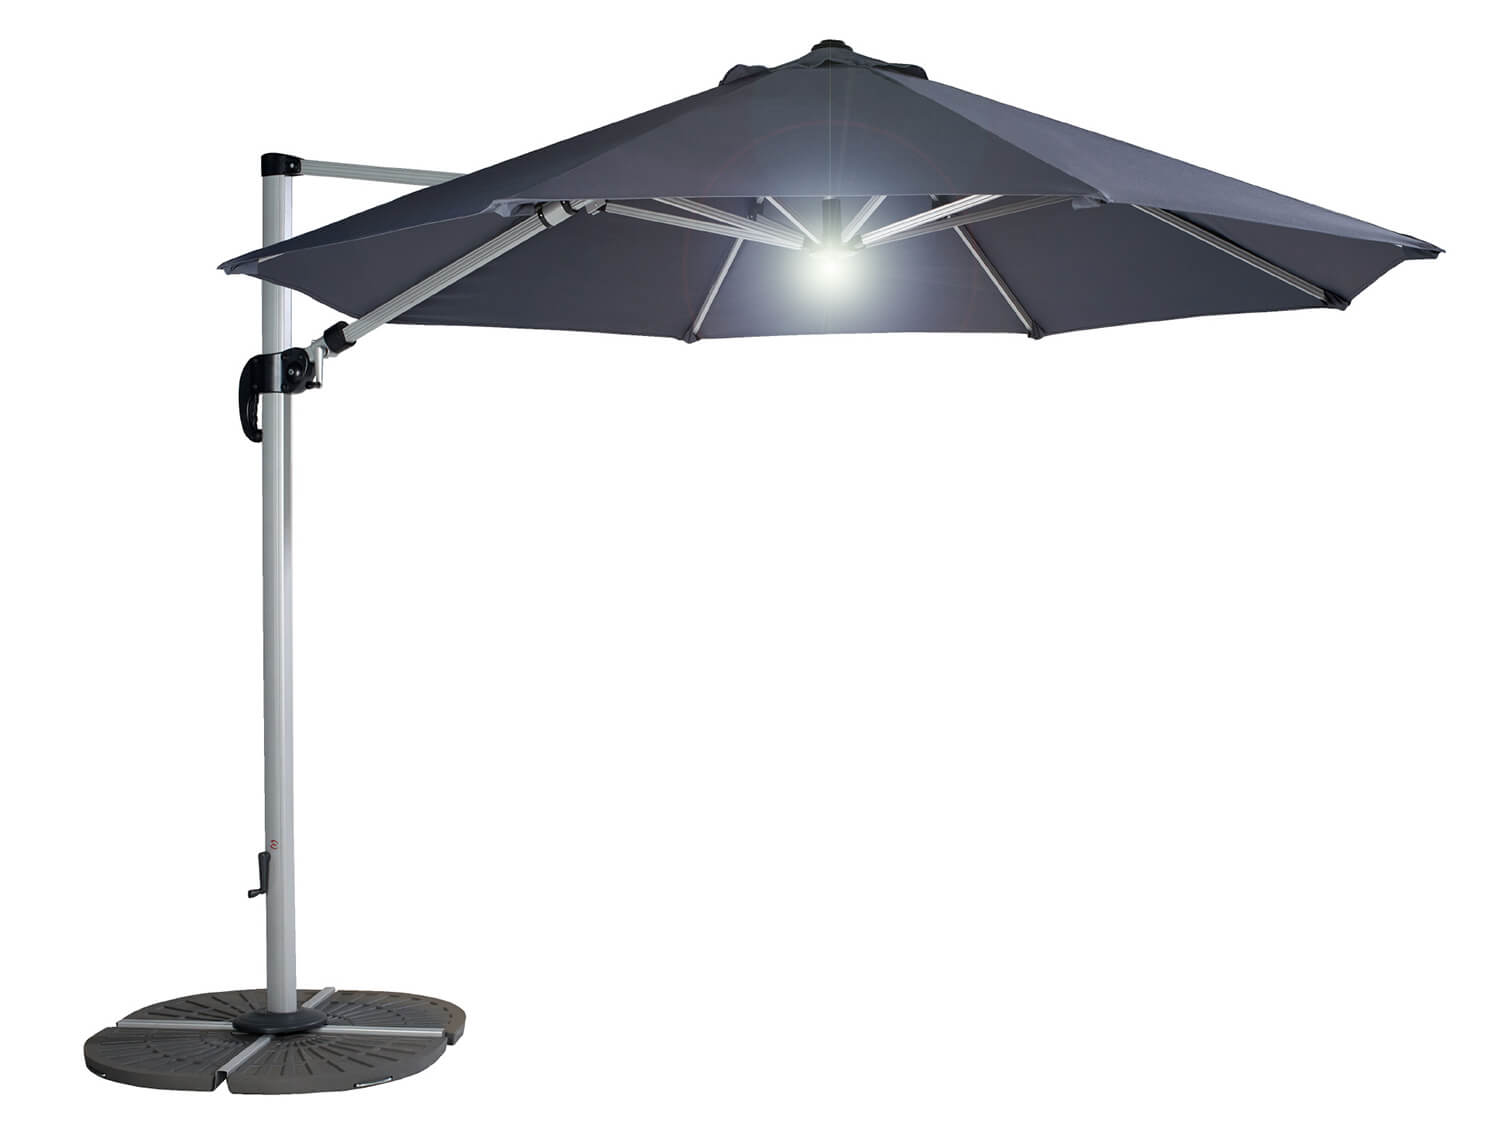 Hartman Parasol Solar Line R 300 Polyester.Buy Rotating Cantilever Parasol Shop Every Store On The Internet